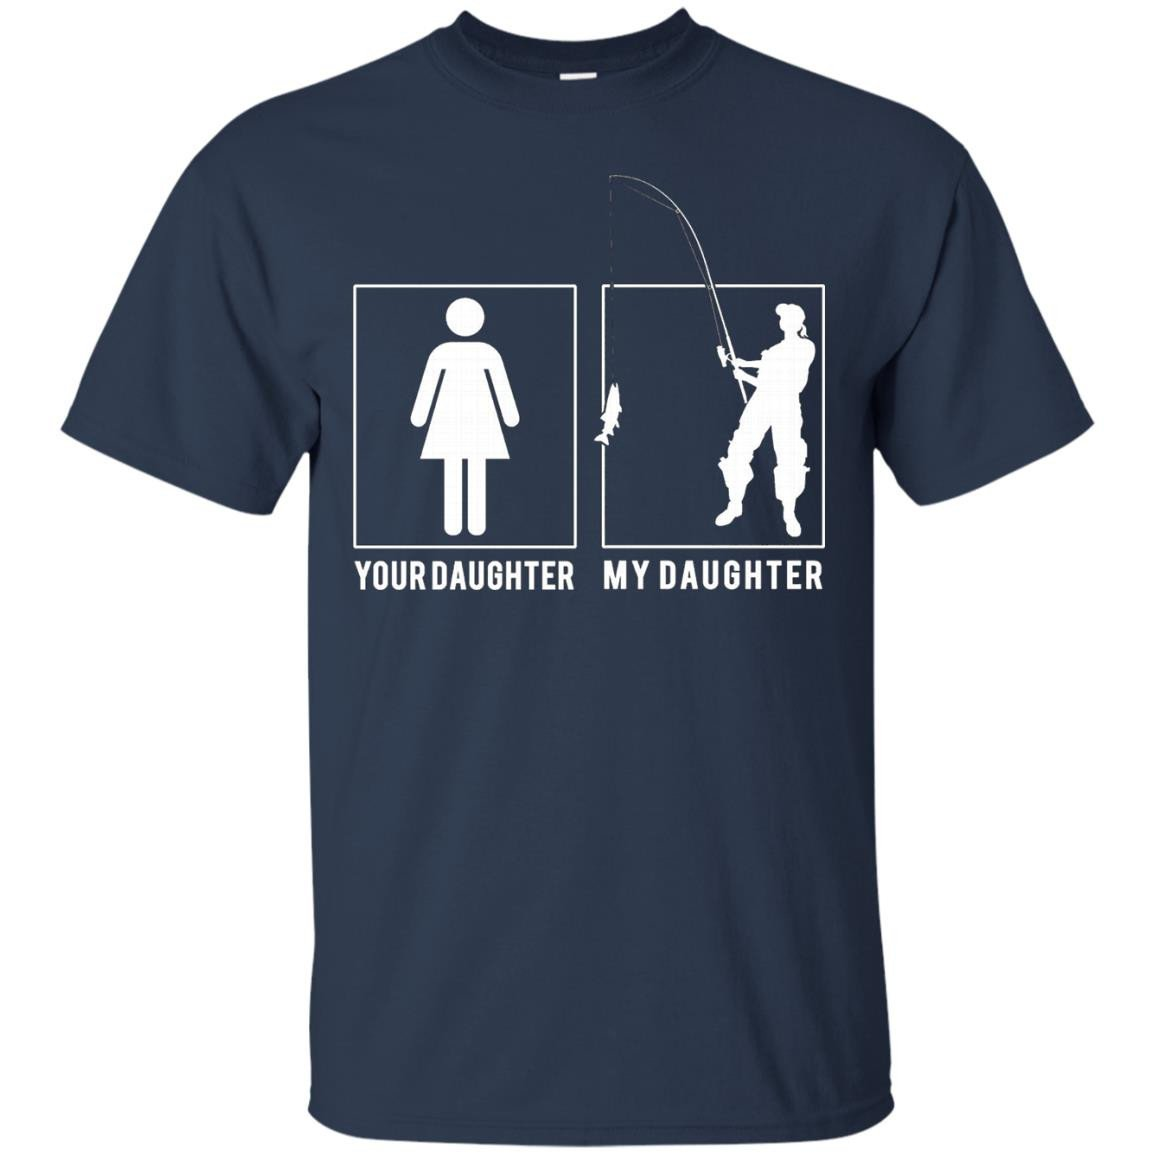 FISHING - YOUR DAUGHTER - MY DAUGHTER T SHIRT - FATHER'S DAY - T-Shirt